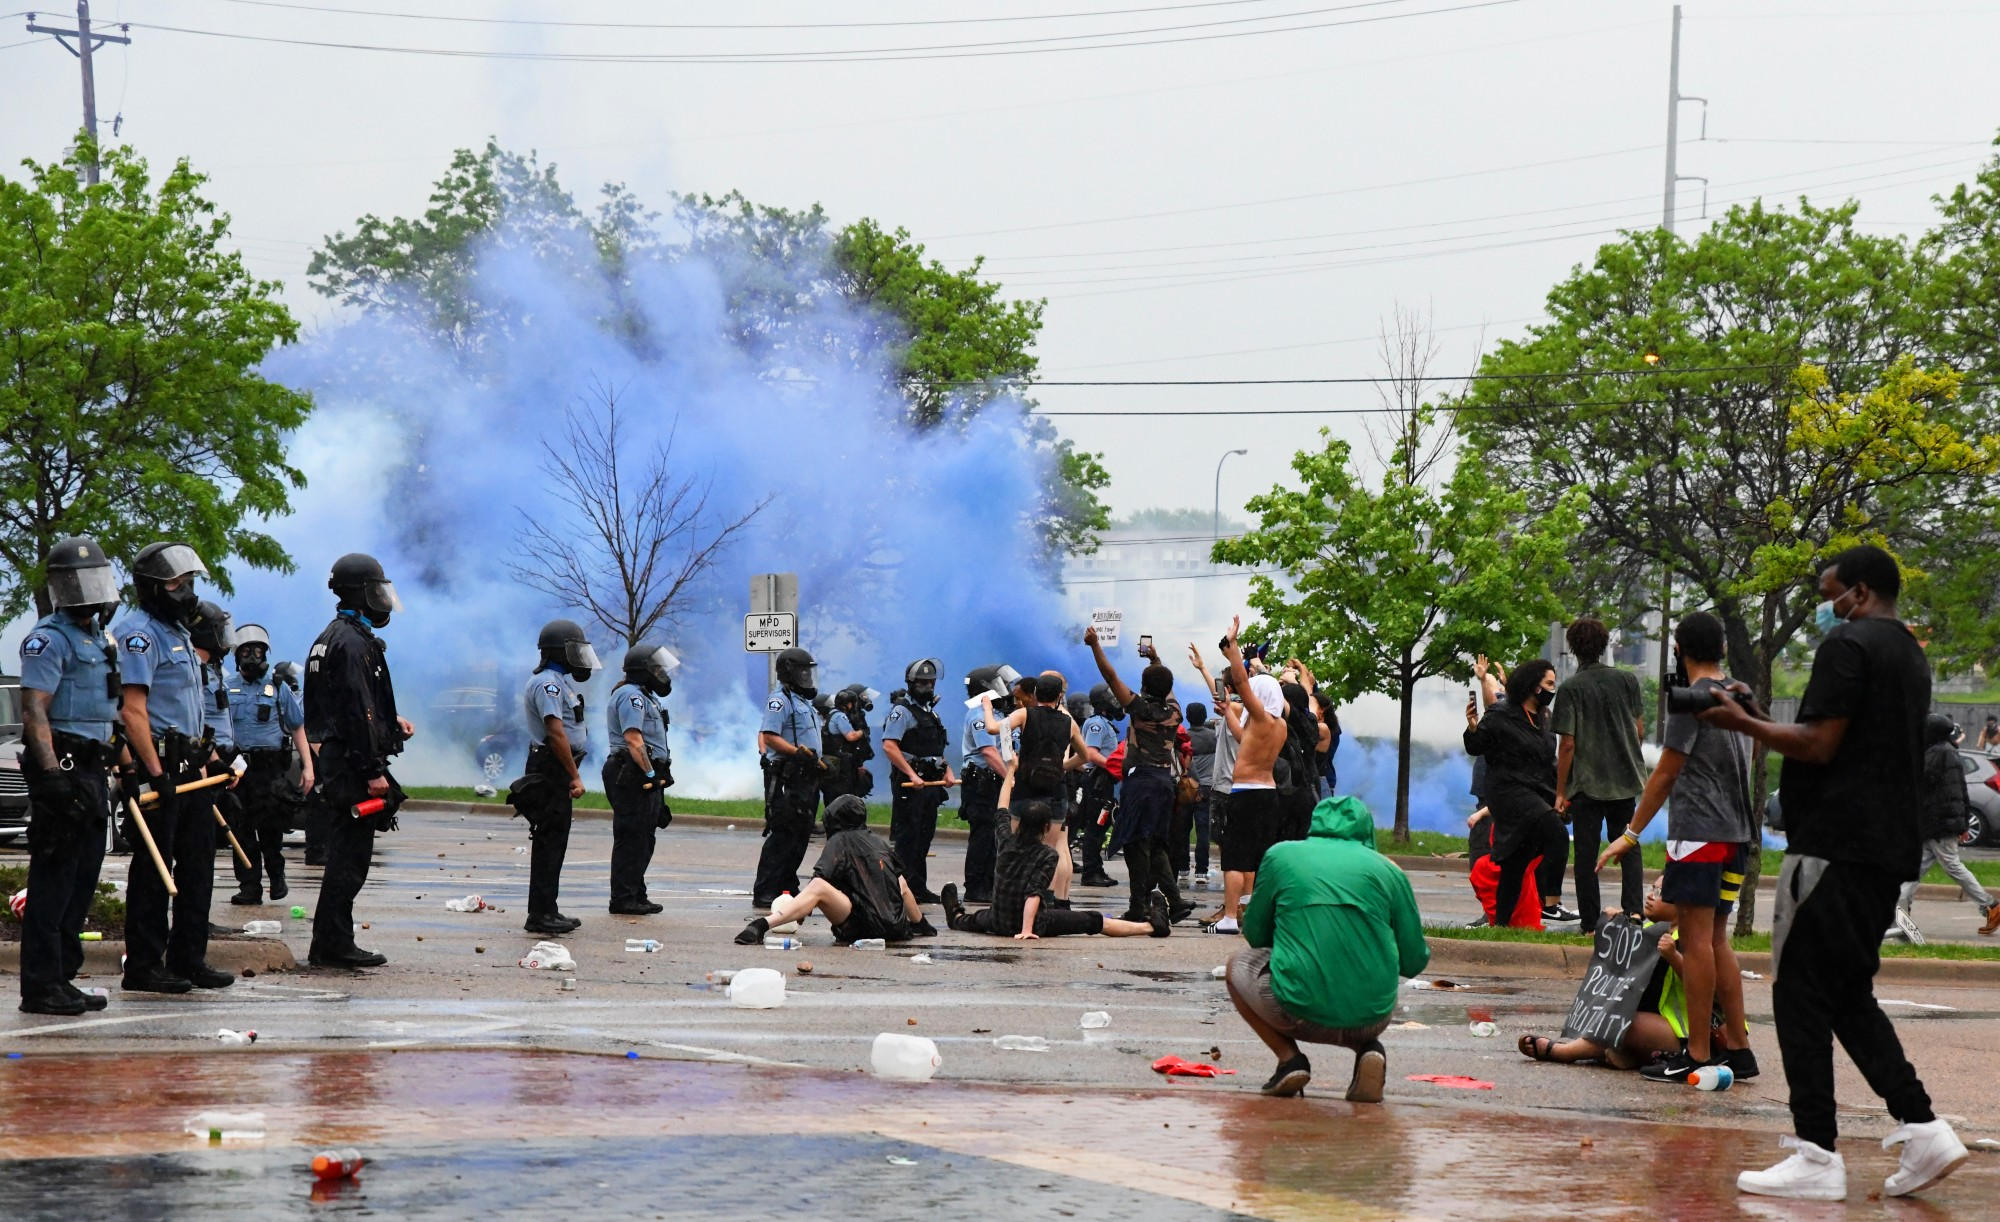 <p>Protesters clash with police outside of the Minneapolis 3rd Police Precinct on Minnehaha Avenue on Tuesday, May 26. The protest was in response to the death of George Floyd in police custody. </p>